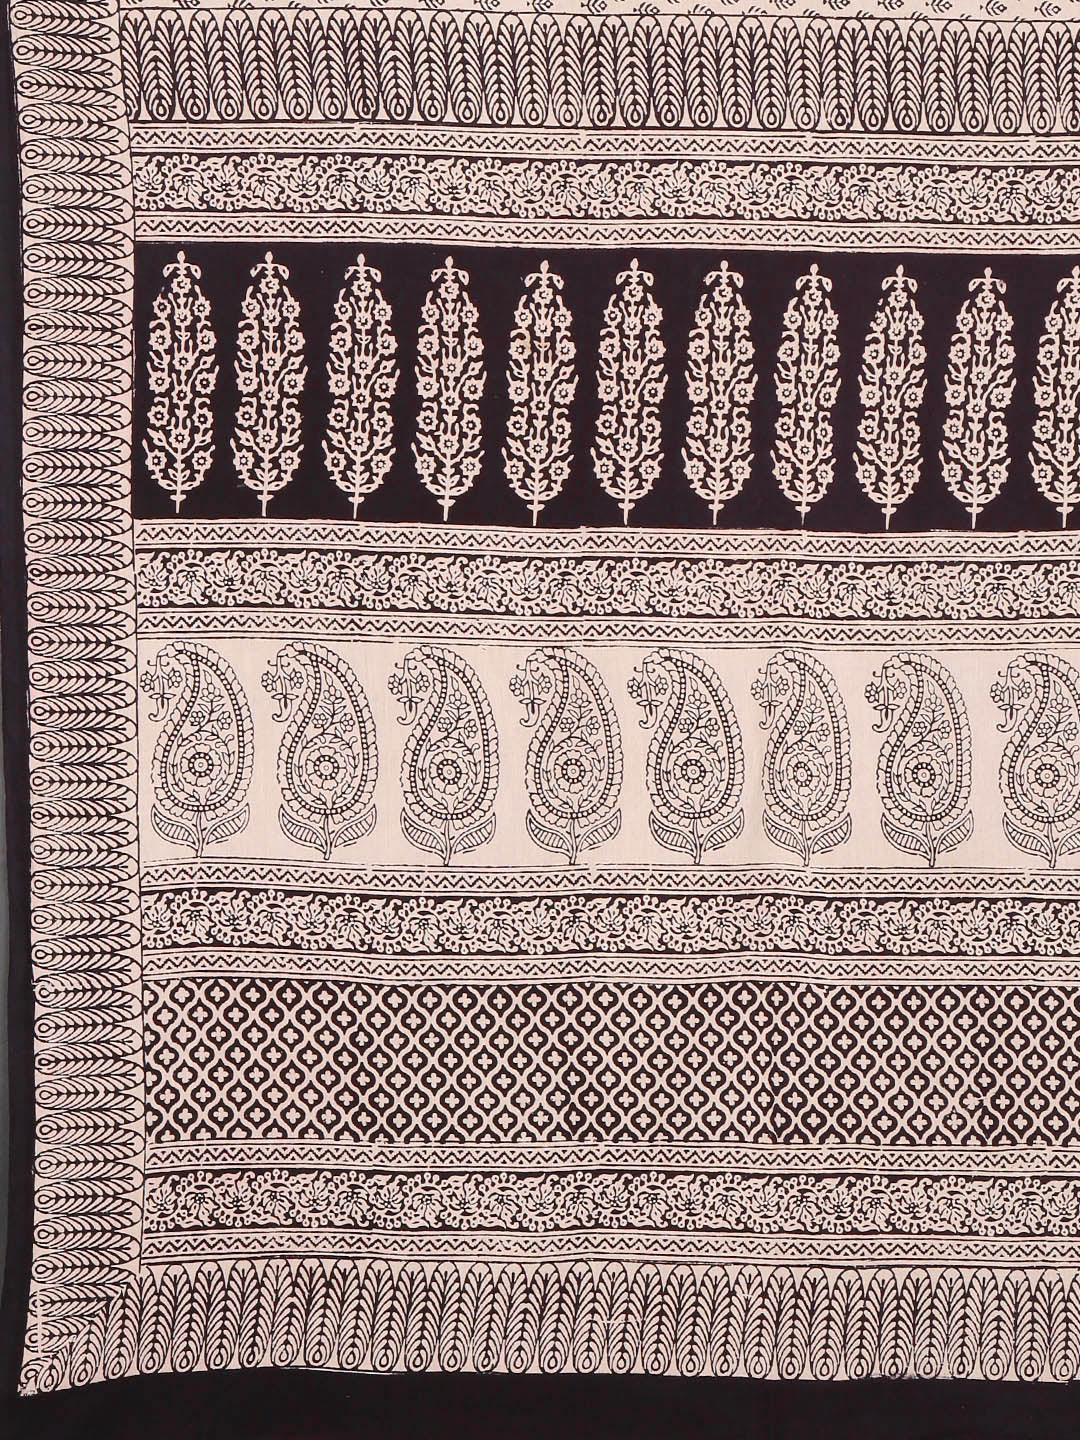 Off-White Black Handblock Print Bagh Saree-Saree-Kalakari India-MYBASA0010-Bagh, Cotton, Geographical Indication, Hand Blocks, Hand Crafted, Heritage Prints, Natural Dyes, Sarees, Sustainable Fabrics-[Linen,Ethnic,wear,Fashionista,Handloom,Handicraft,Indigo,blockprint,block,print,Cotton,Chanderi,Blue, latest,classy,party,bollywood,trendy,summer,style,traditional,formal,elegant,unique,style,hand,block,print, dabu,booti,gift,present,glamorous,affordable,collectible,Sari,Saree,printed, holi, Diwali